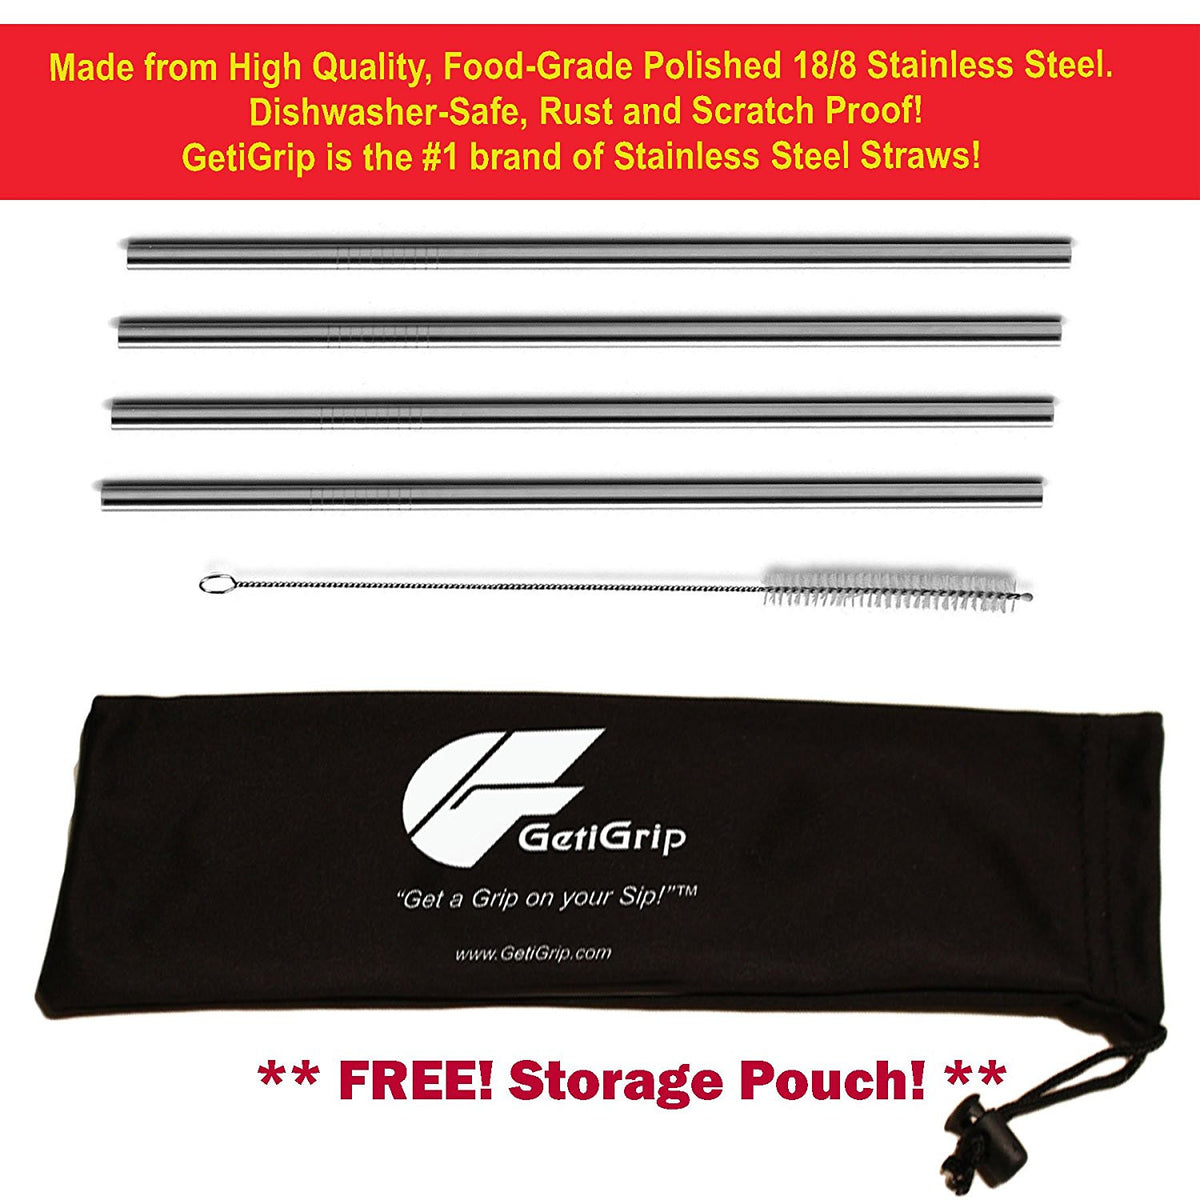 GetiGrip Extra Long Stainless Steel Straws, Set of 4 with FREE Storage Pouch and Cleaning Brush!